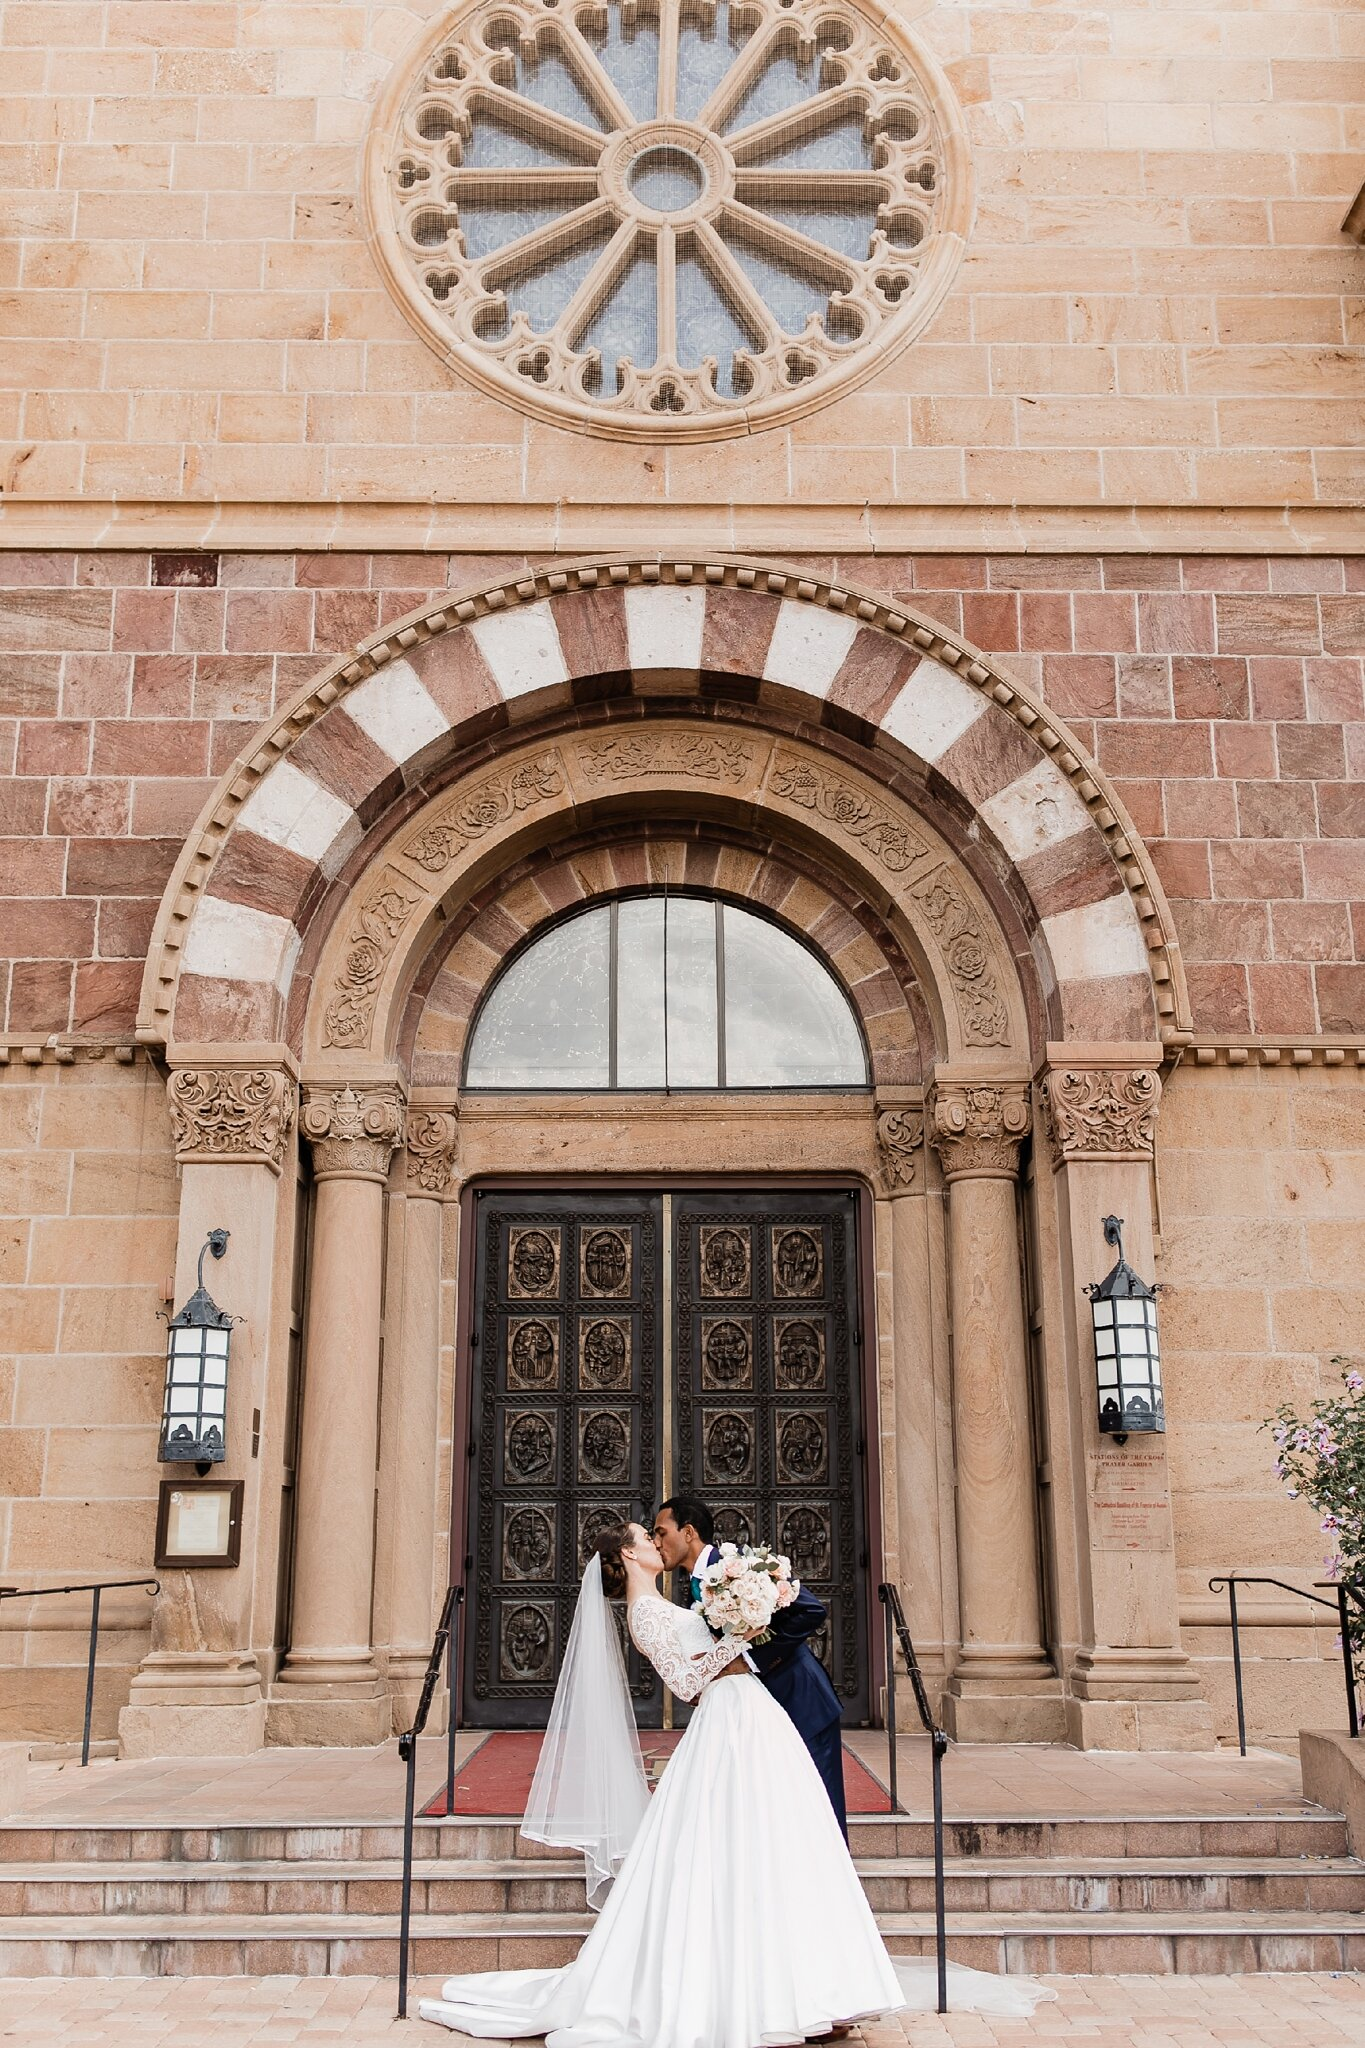 Alicia+lucia+photography+-+albuquerque+wedding+photographer+-+santa+fe+wedding+photography+-+new+mexico+wedding+photographer+-+new+mexico+wedding+-+hindu+wedding+-+catholic+wedding+-+multicultural+wedding+-+santa+fe+wedding_0050.jpg